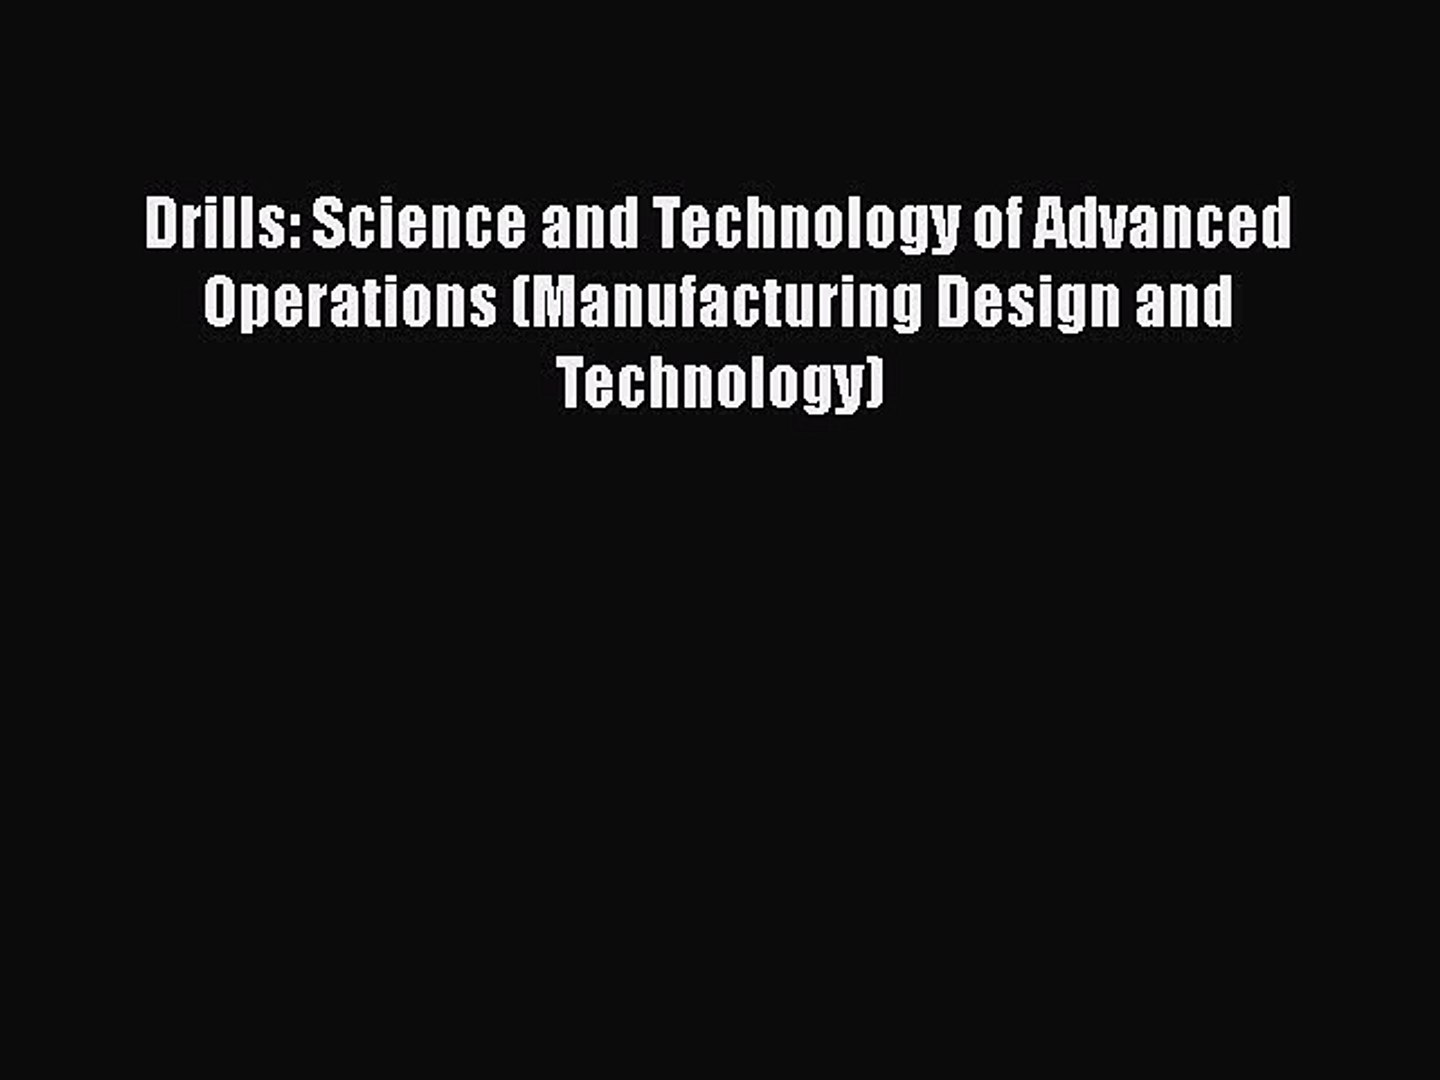 Read Drills: Science and Technology of Advanced Operations (Manufacturing Design and Technology)